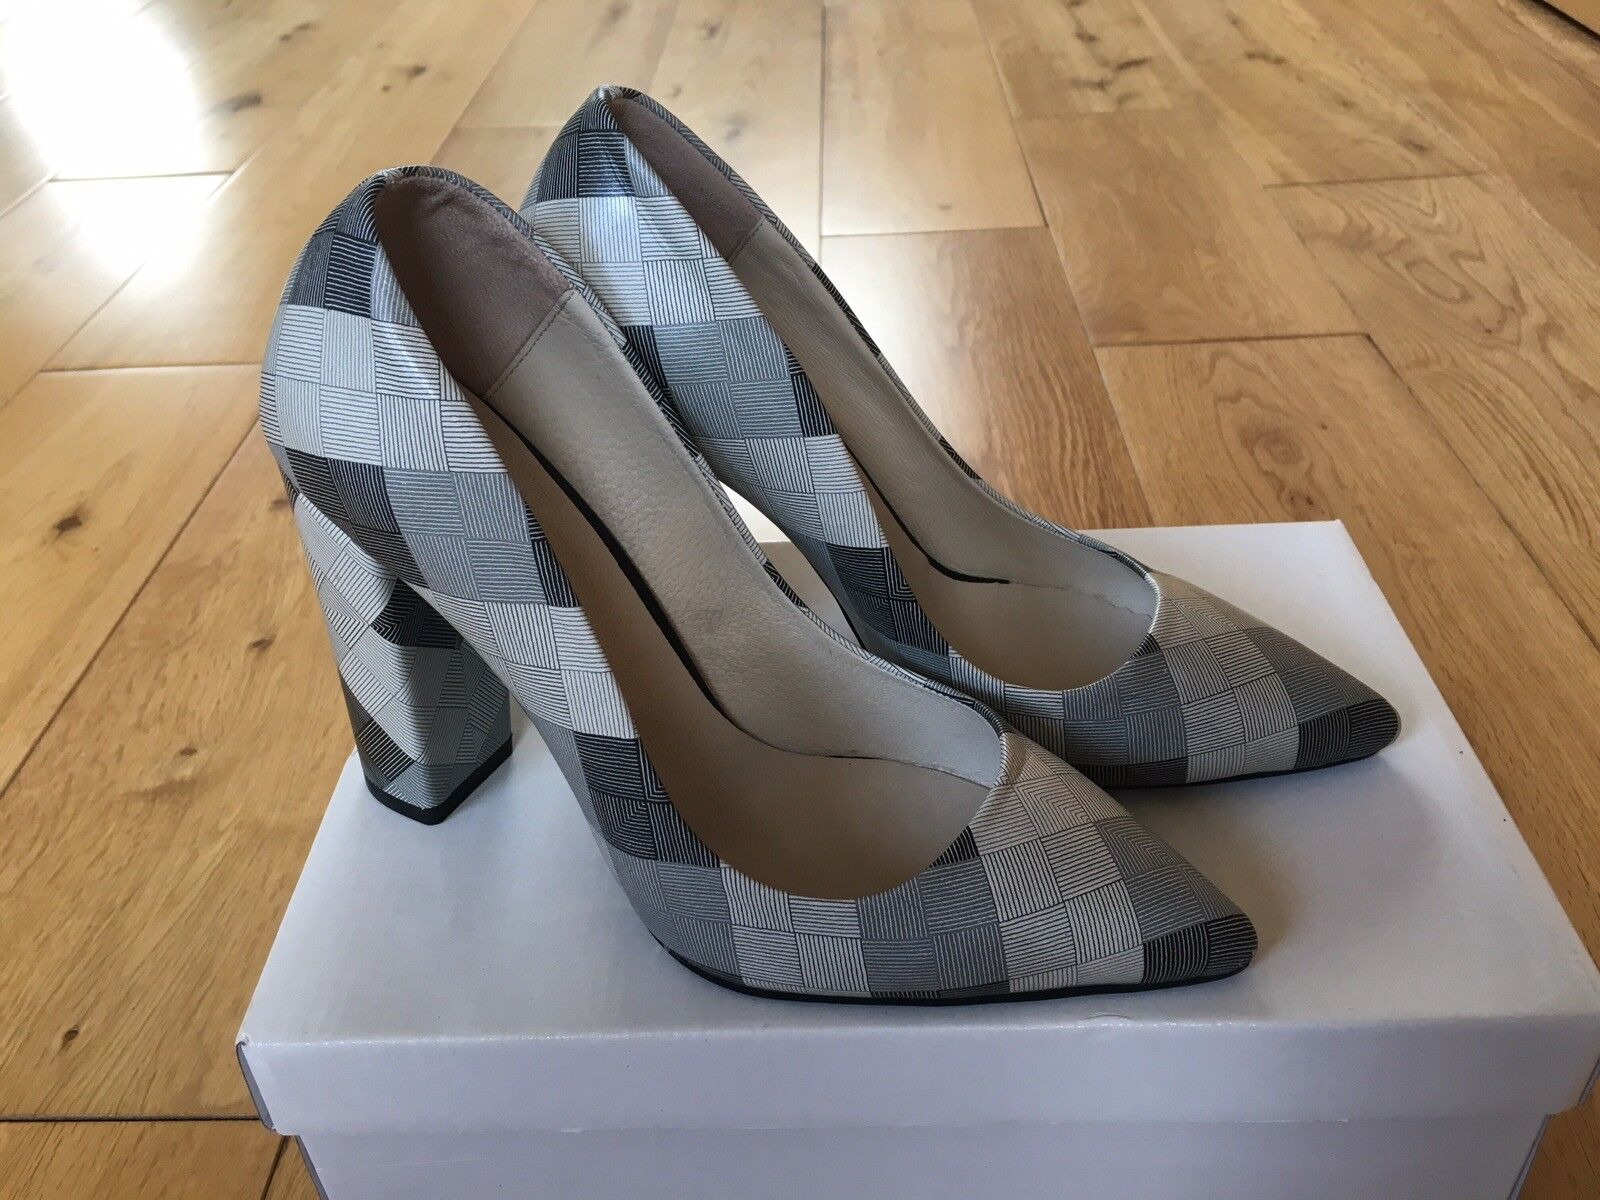 LOS OJO GREY HEEL CHECKERBOARD LEATHER Schuhe BLOCK HEEL GREY COURT Schuhe bd32a2